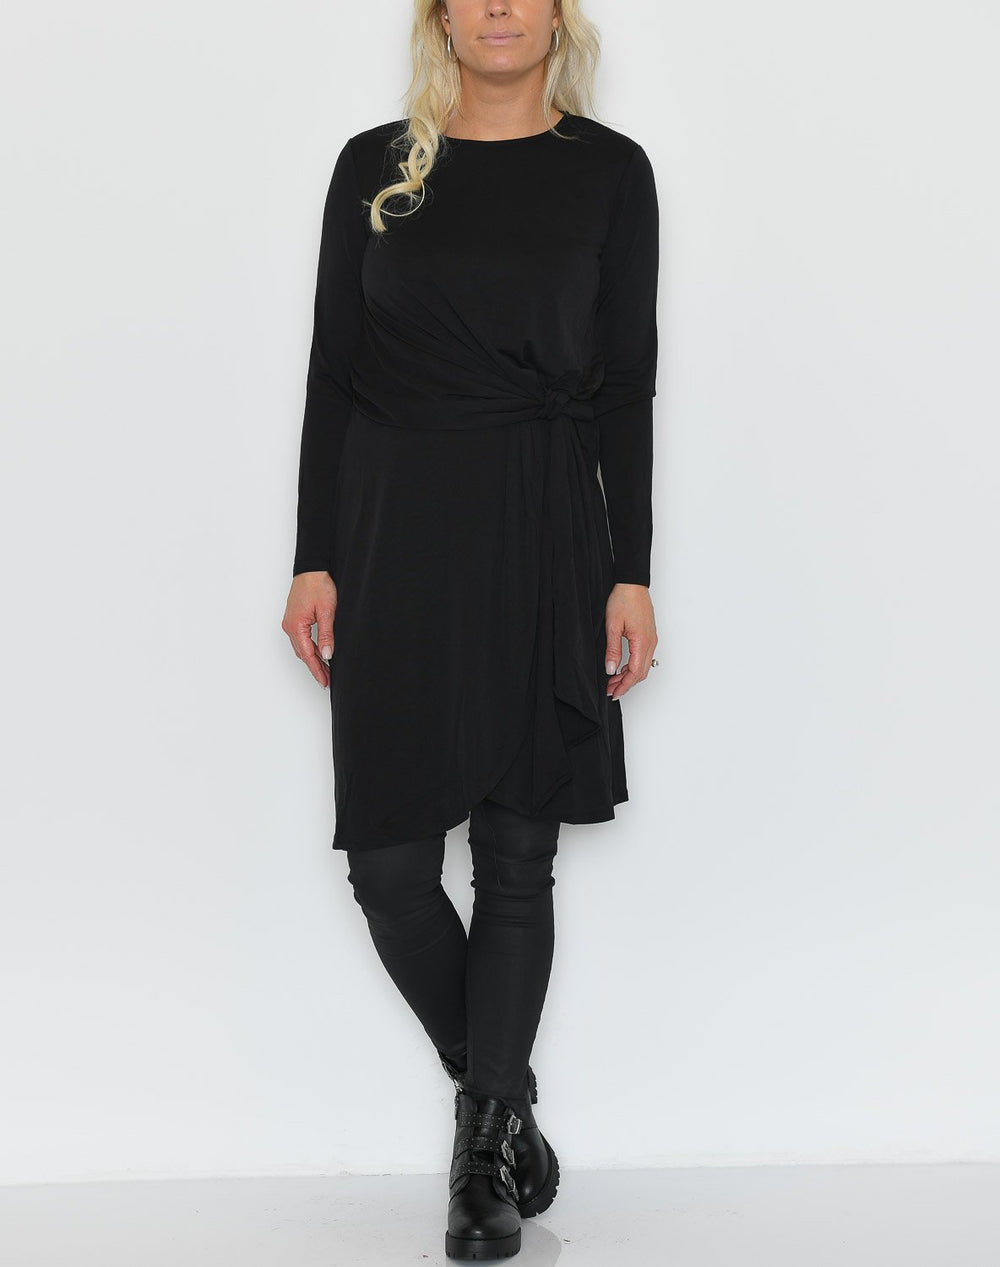 Soft Rebels Jennie LS dress black - Online-Mode